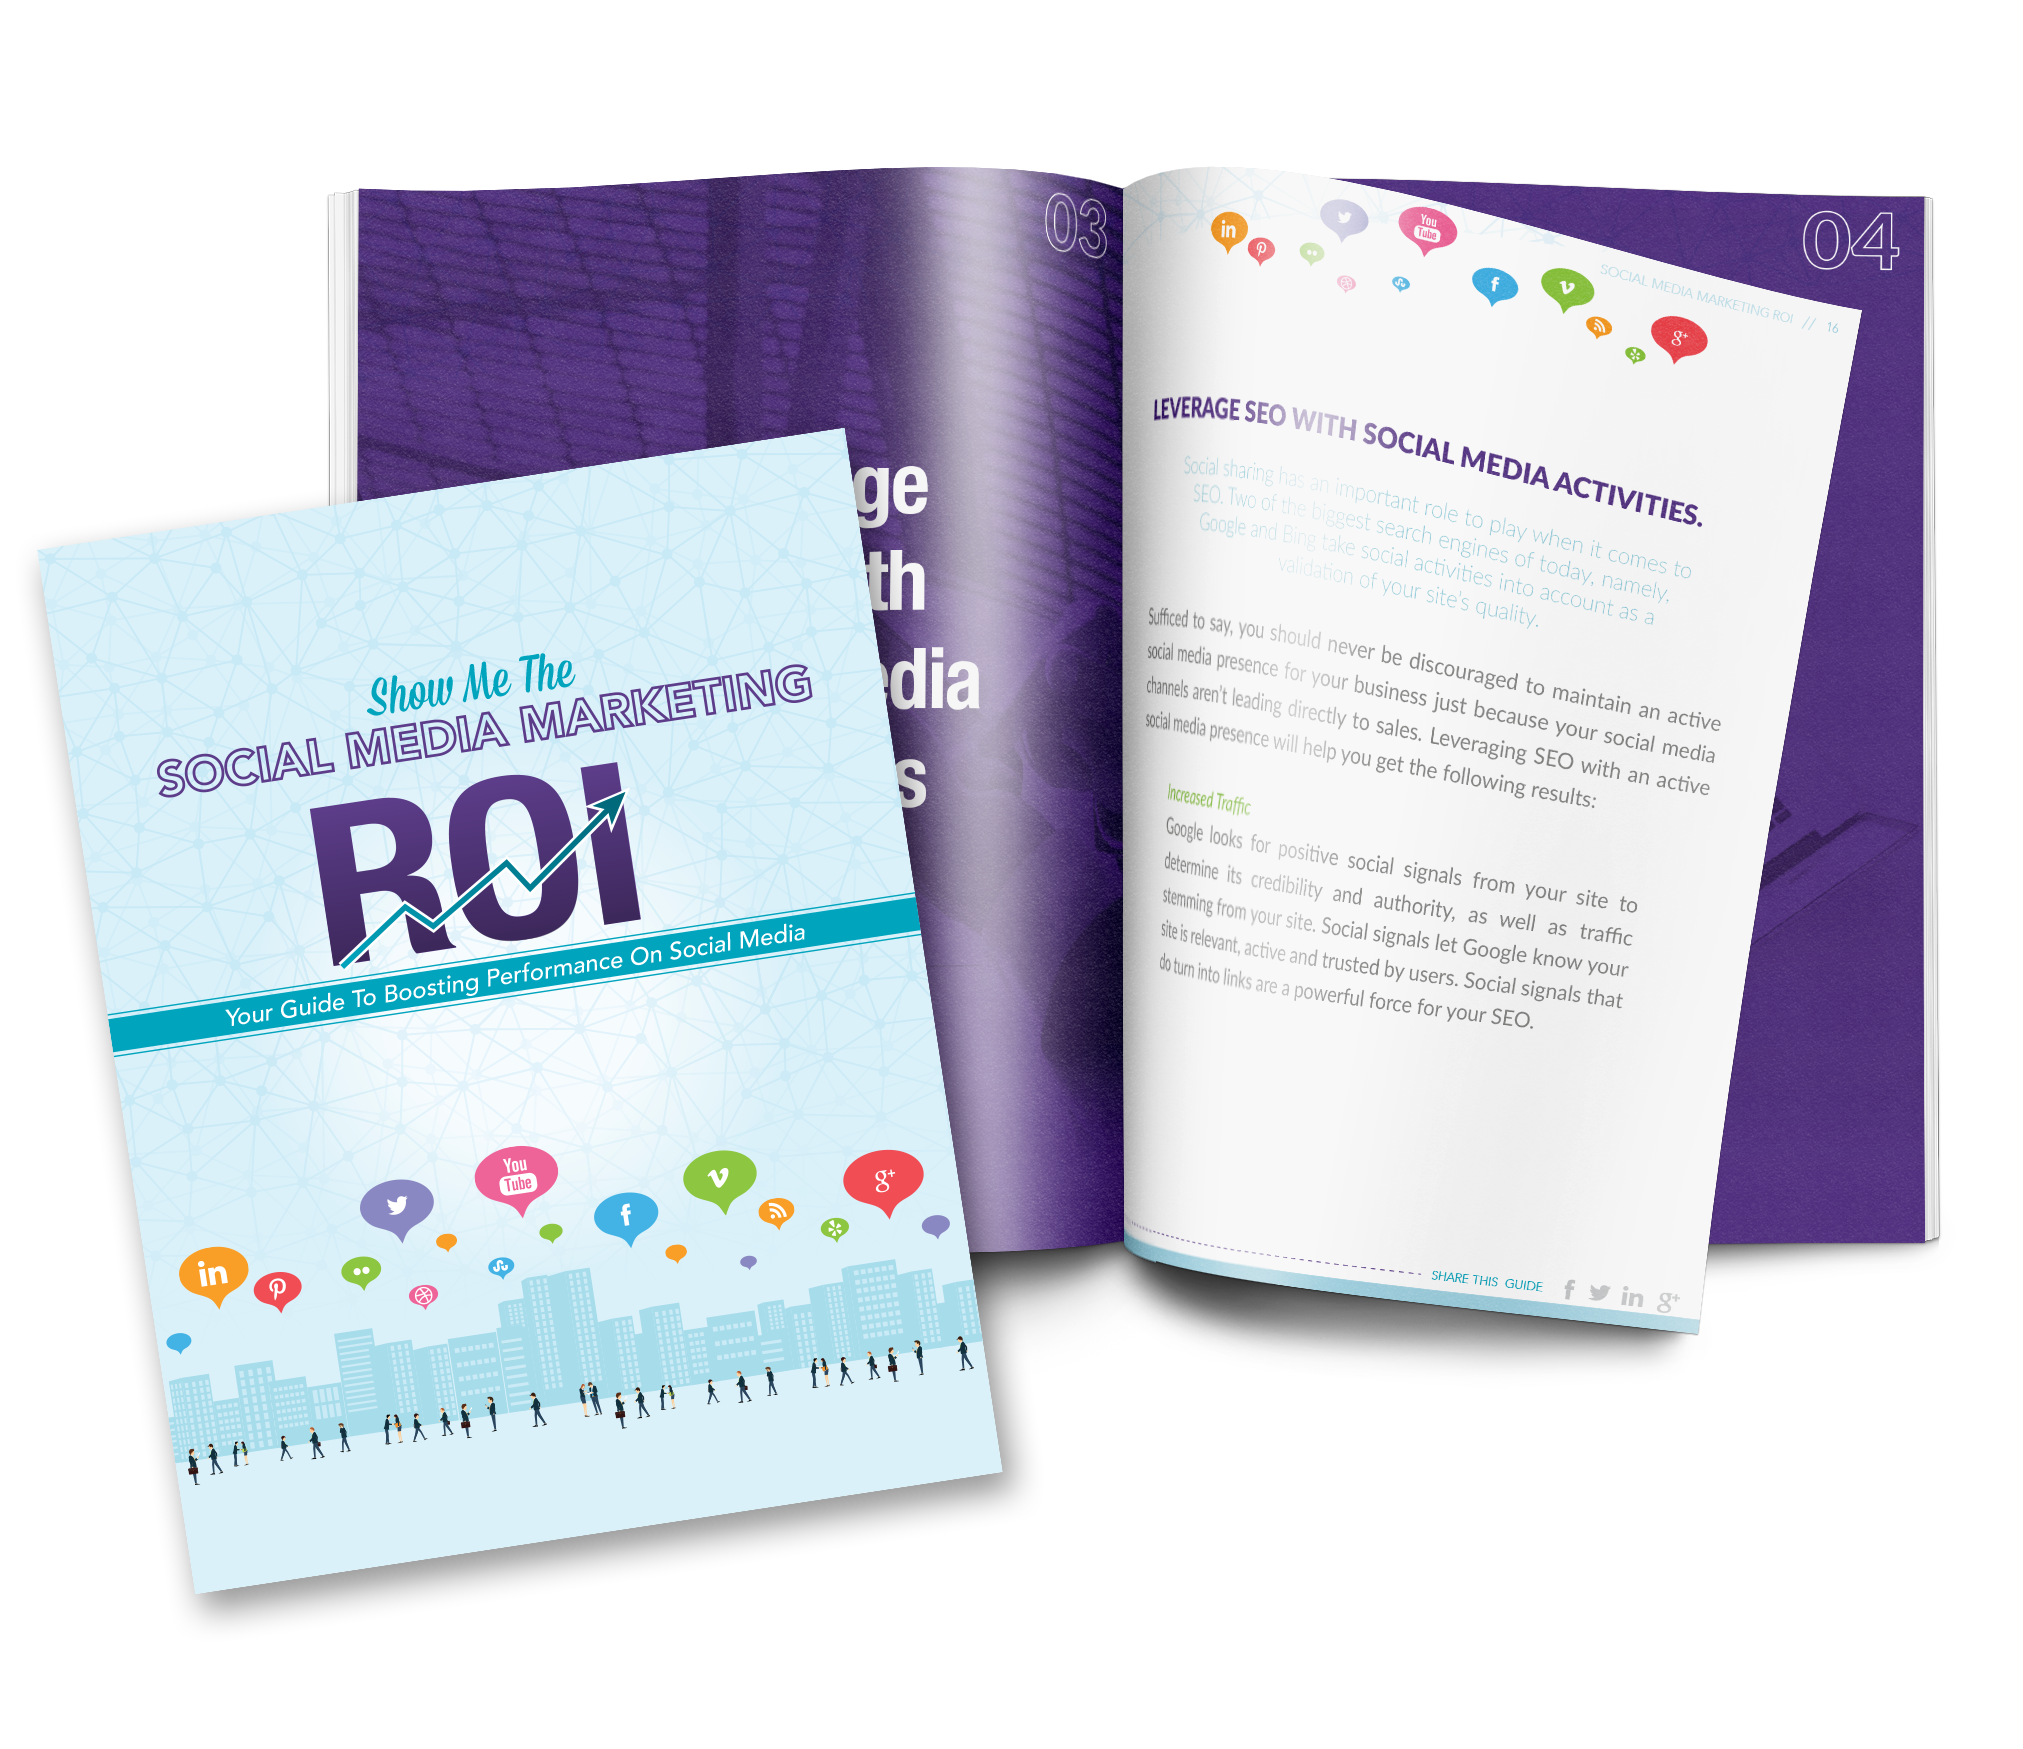 Social Media Marketing ROI Guide